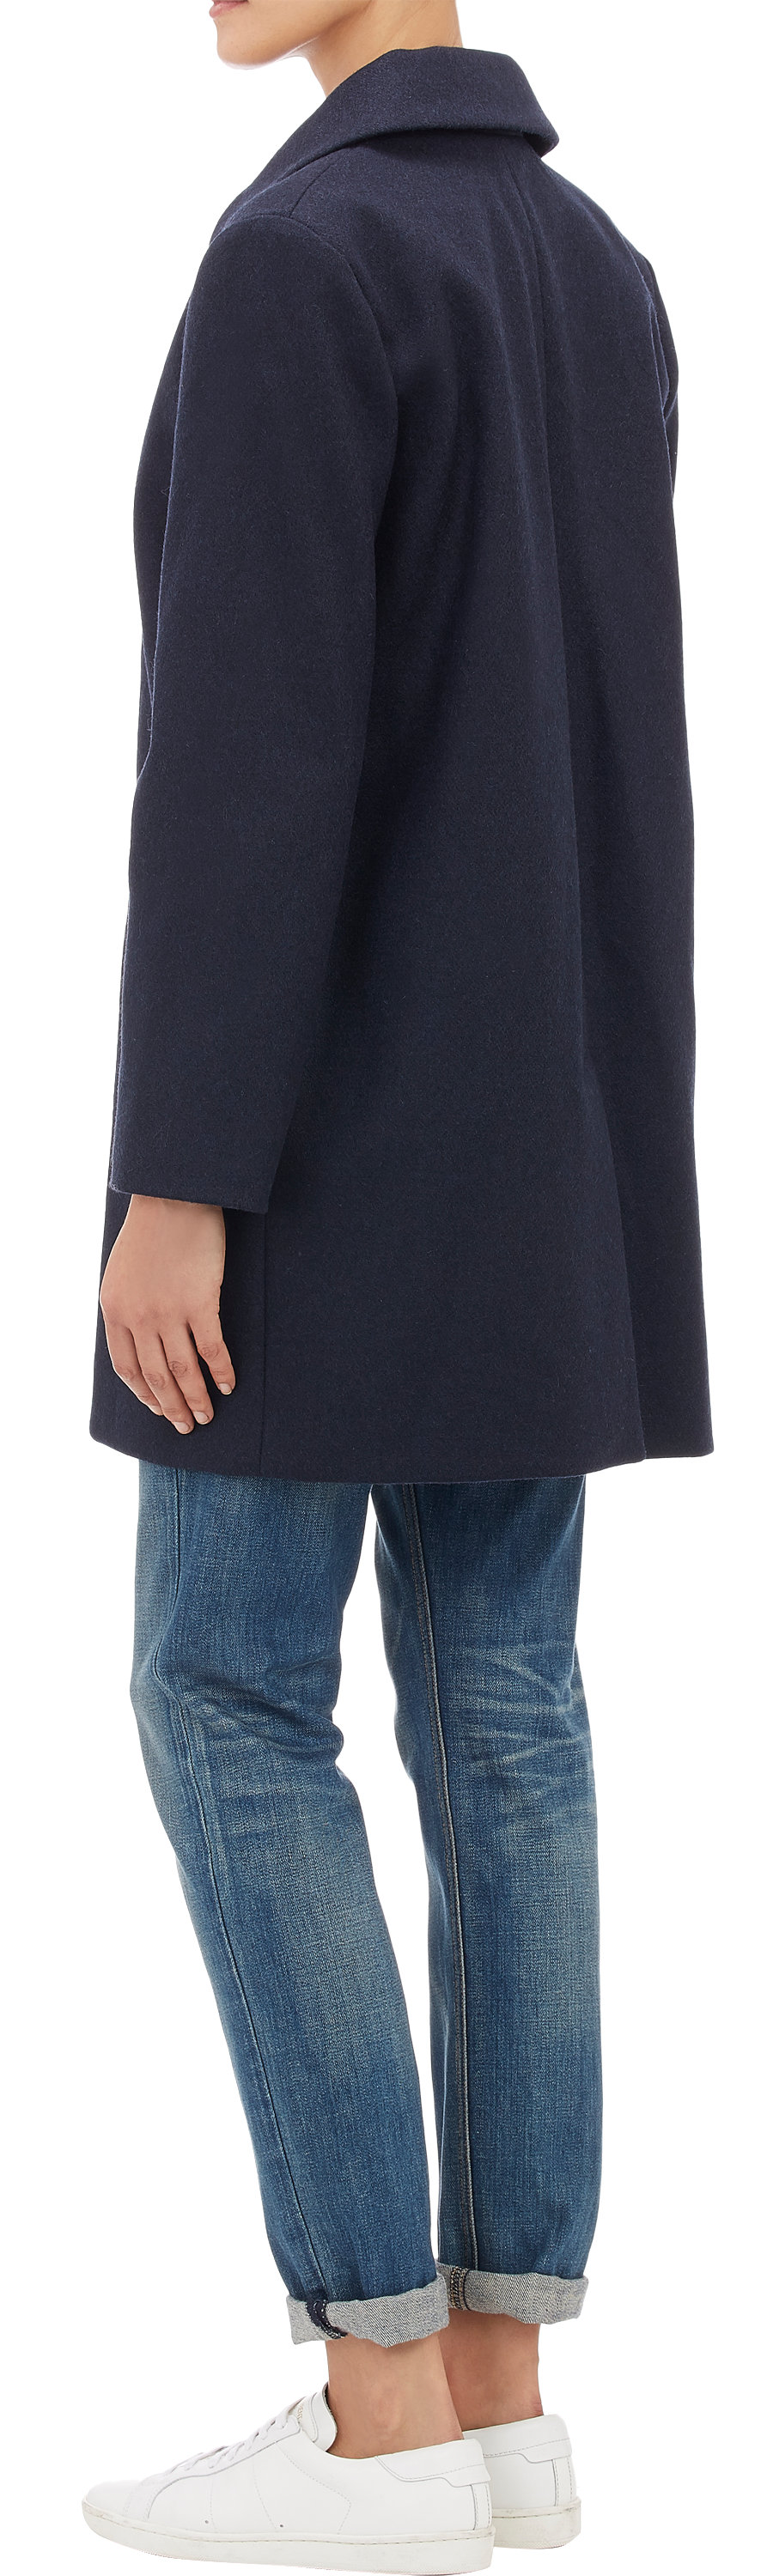 A.p.c. melton topcoat at barneys.com